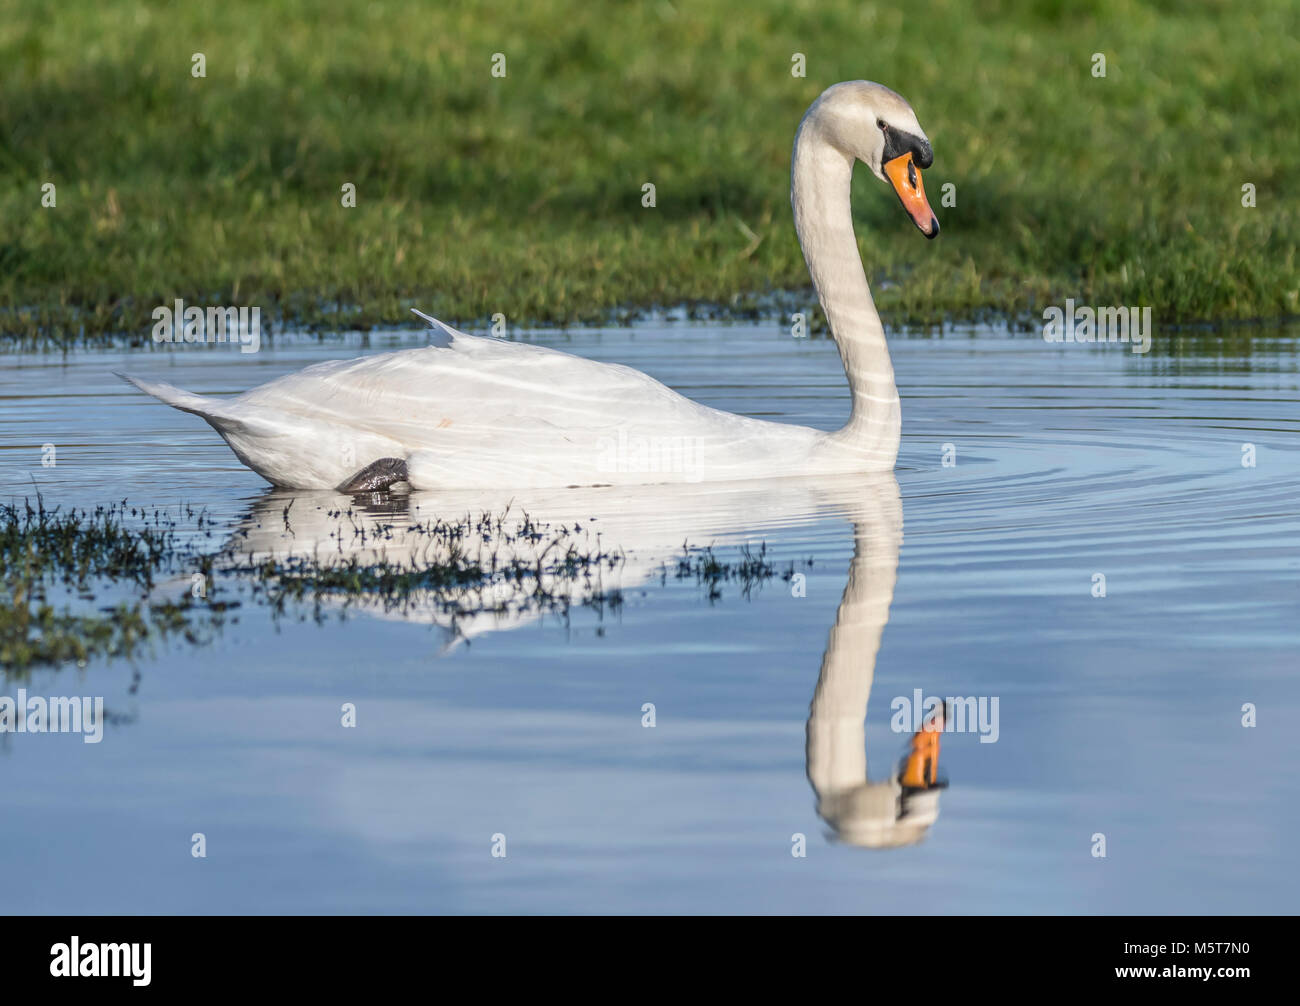 White Mute Swan (Cygnus olor) with perfect reflection, side view, swimming in water in Winter in England, UK. - Stock Image